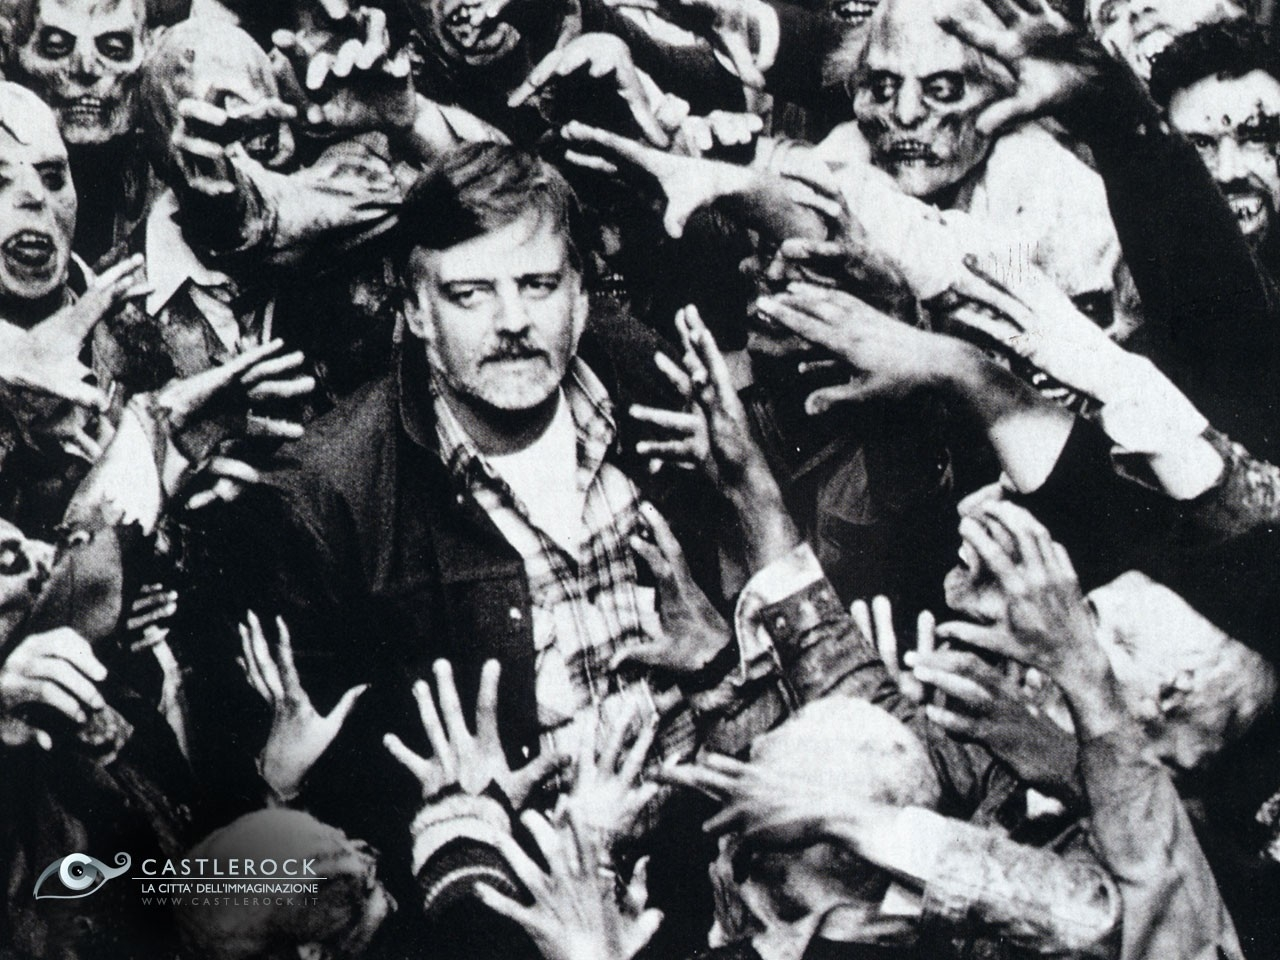 Wallpaper di George A. Romero